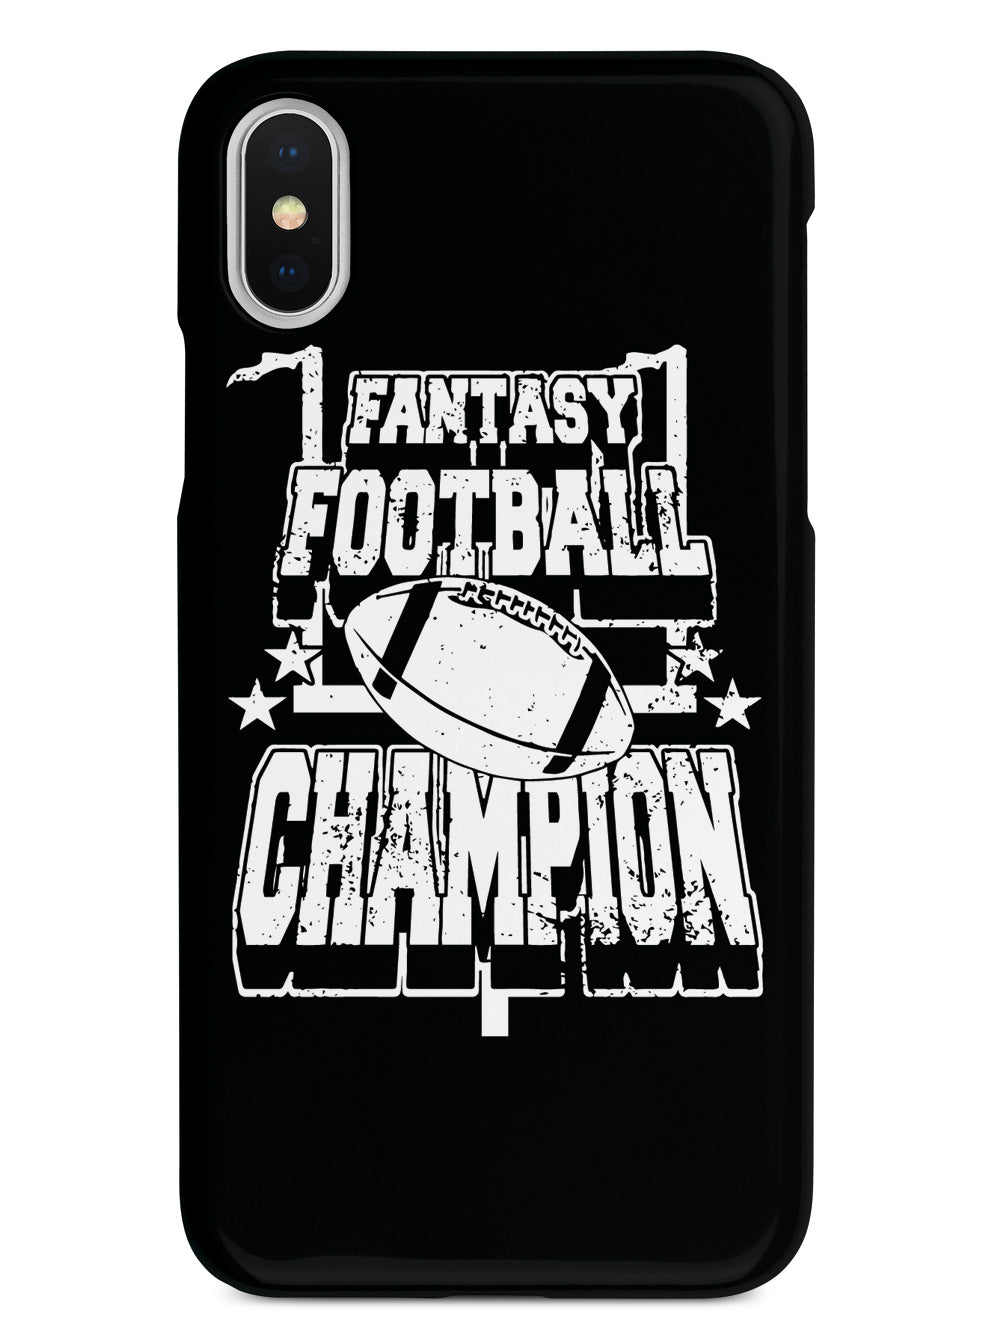 Fantasy Football Champion - Black Case